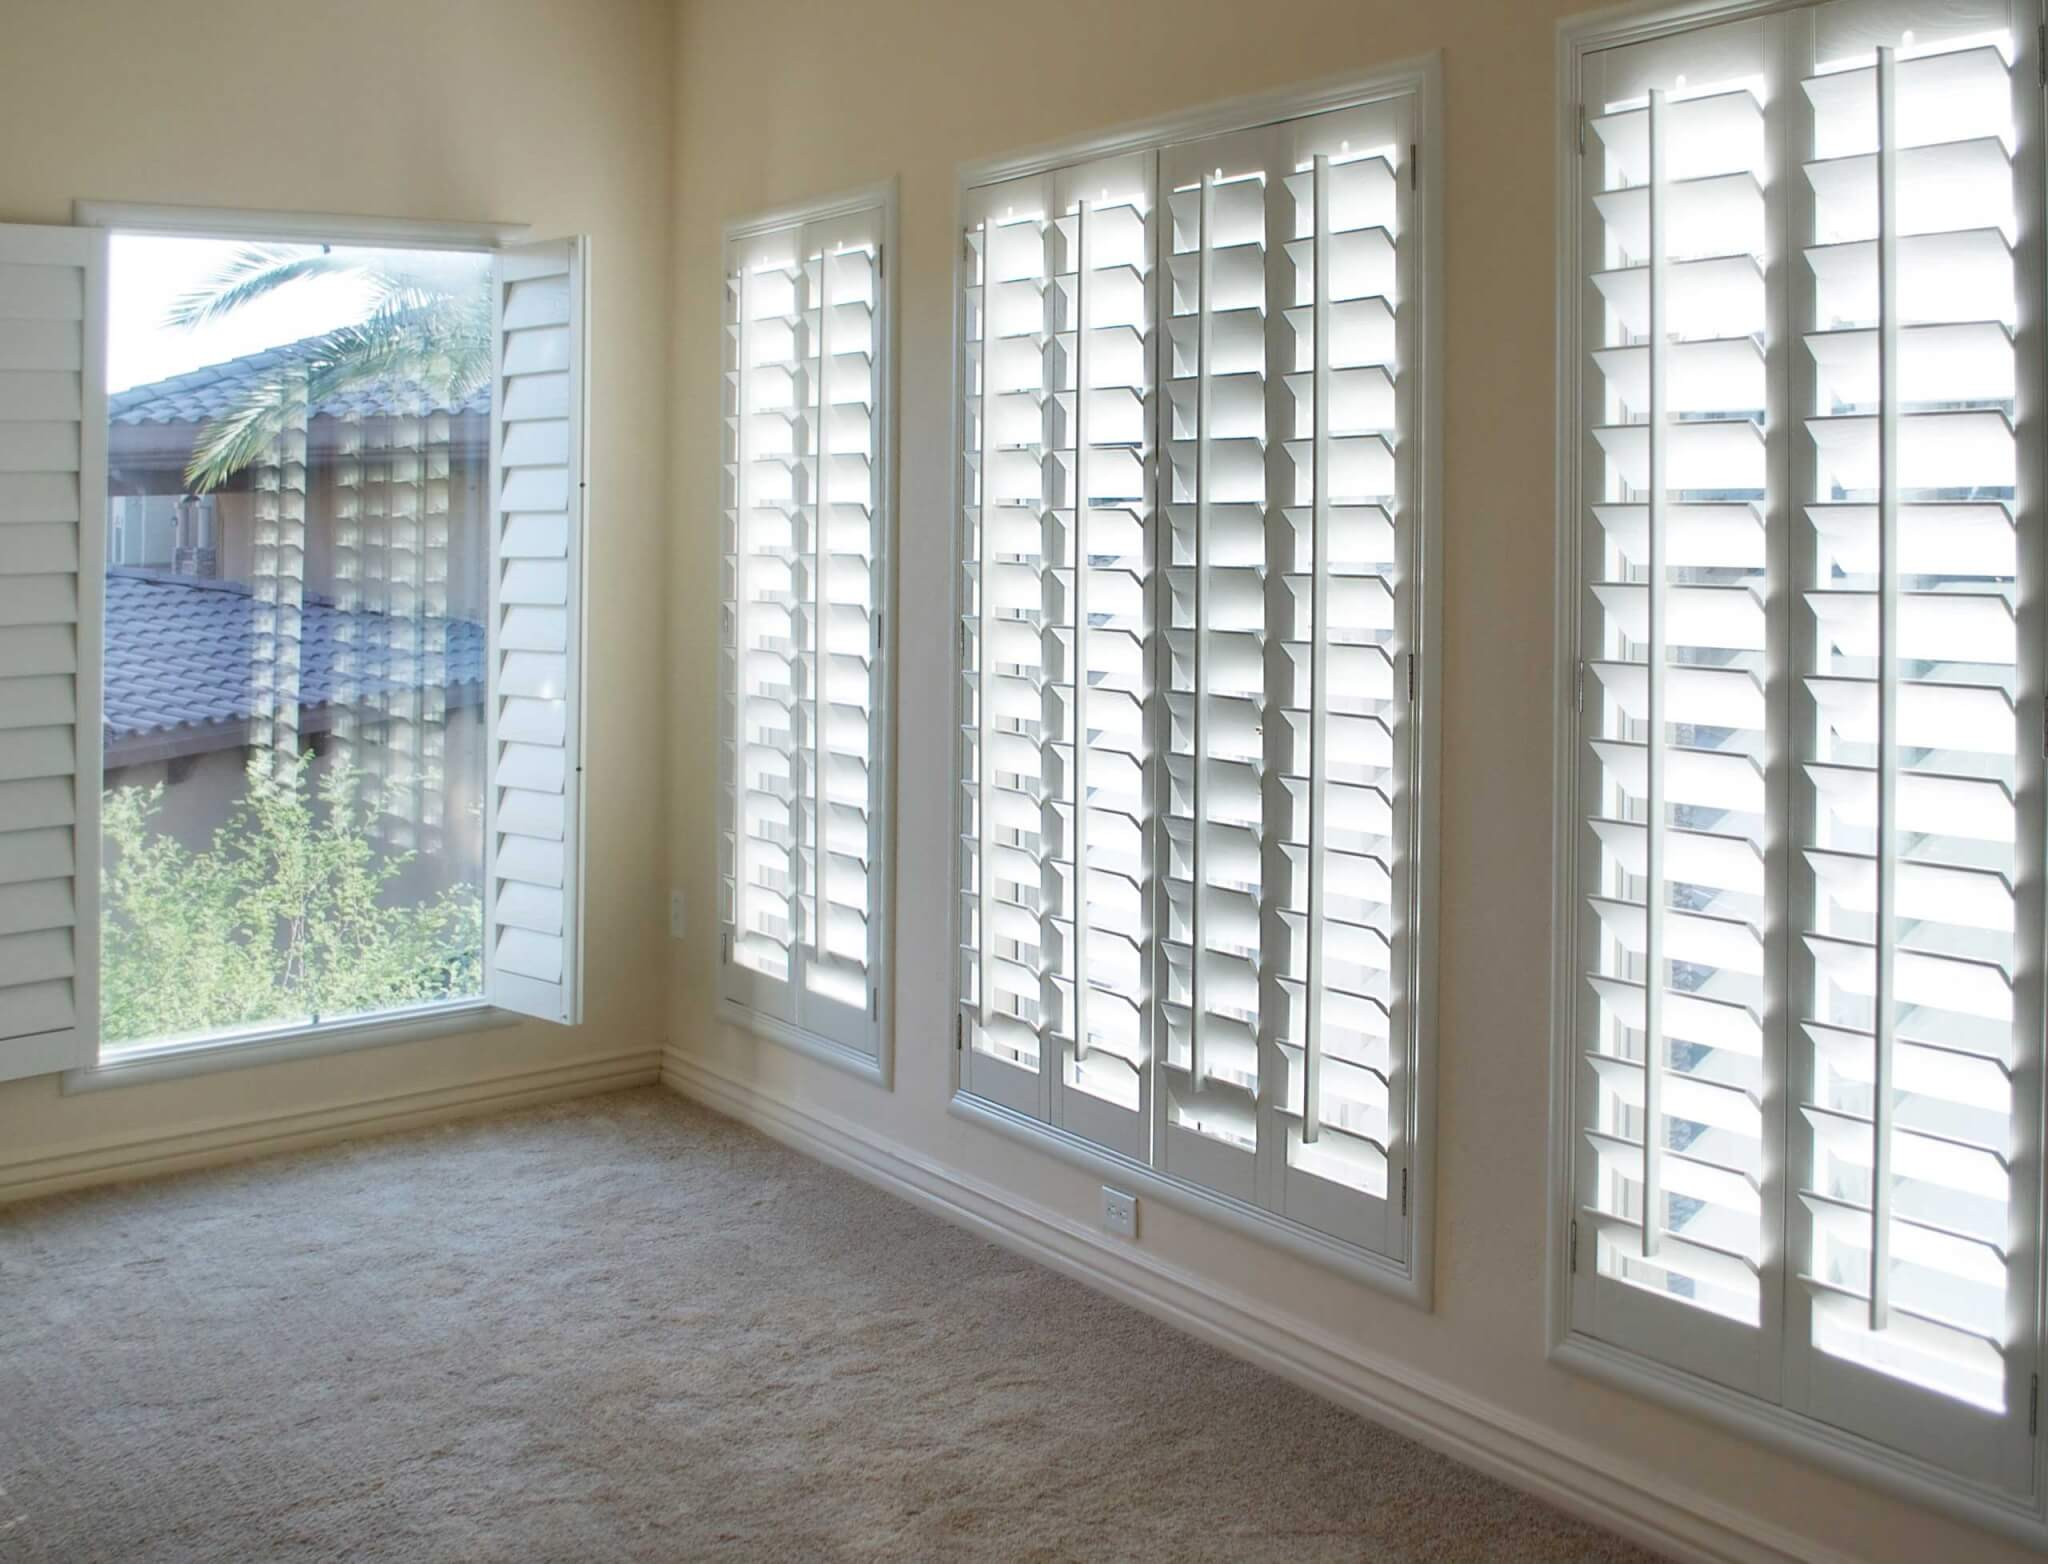 Interior and Exterior Shutter Manufacturing Company